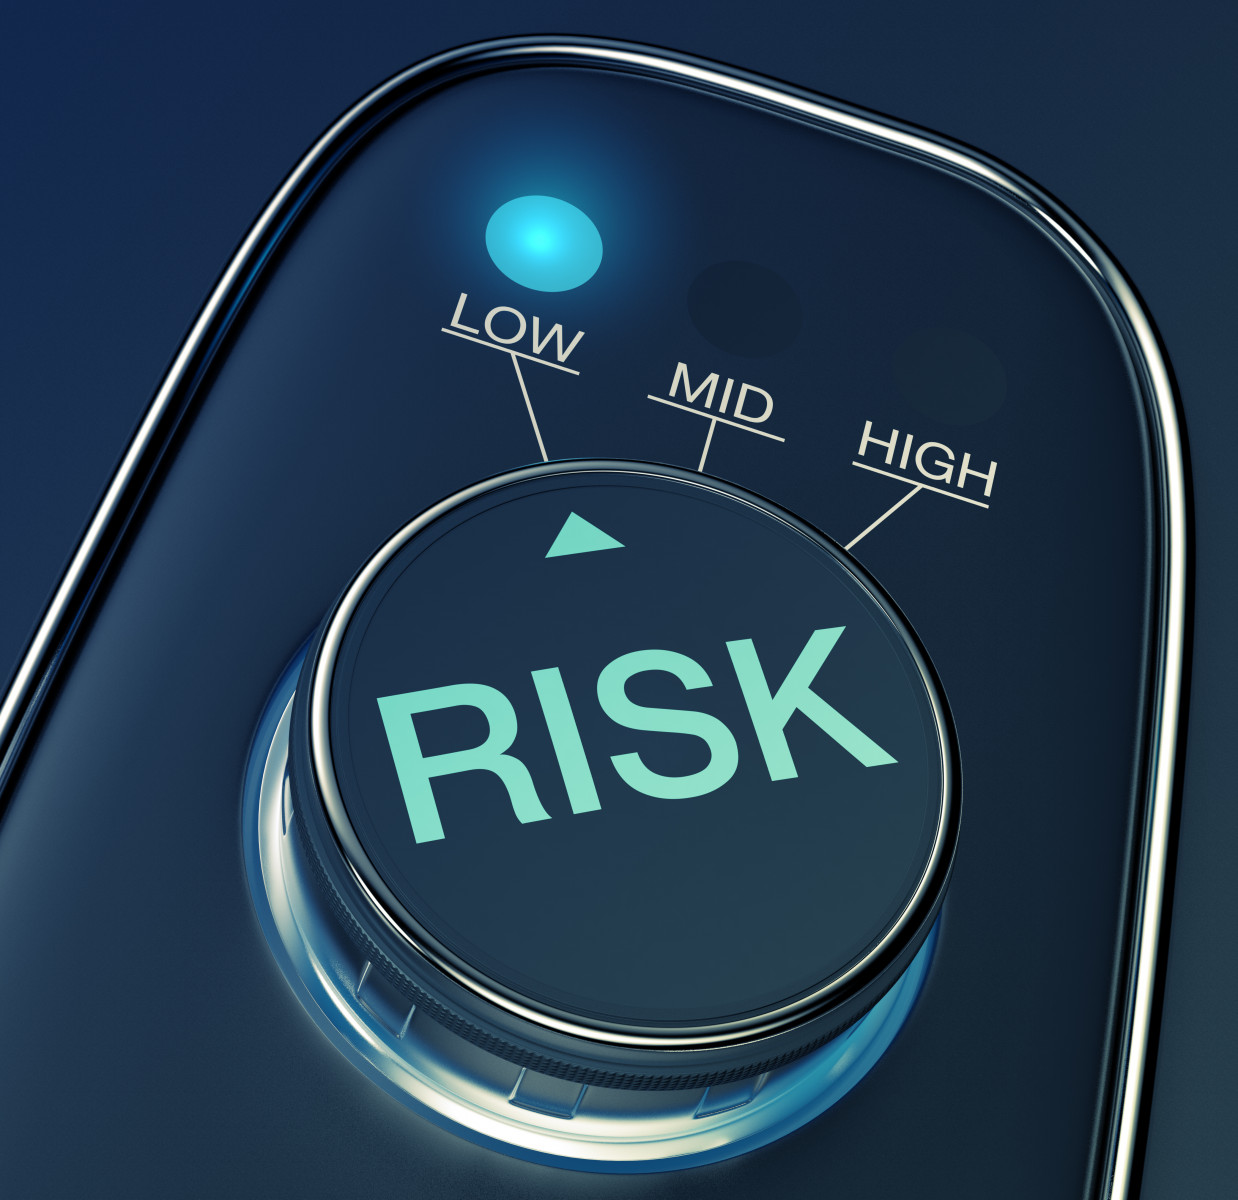 ALS risk and diet